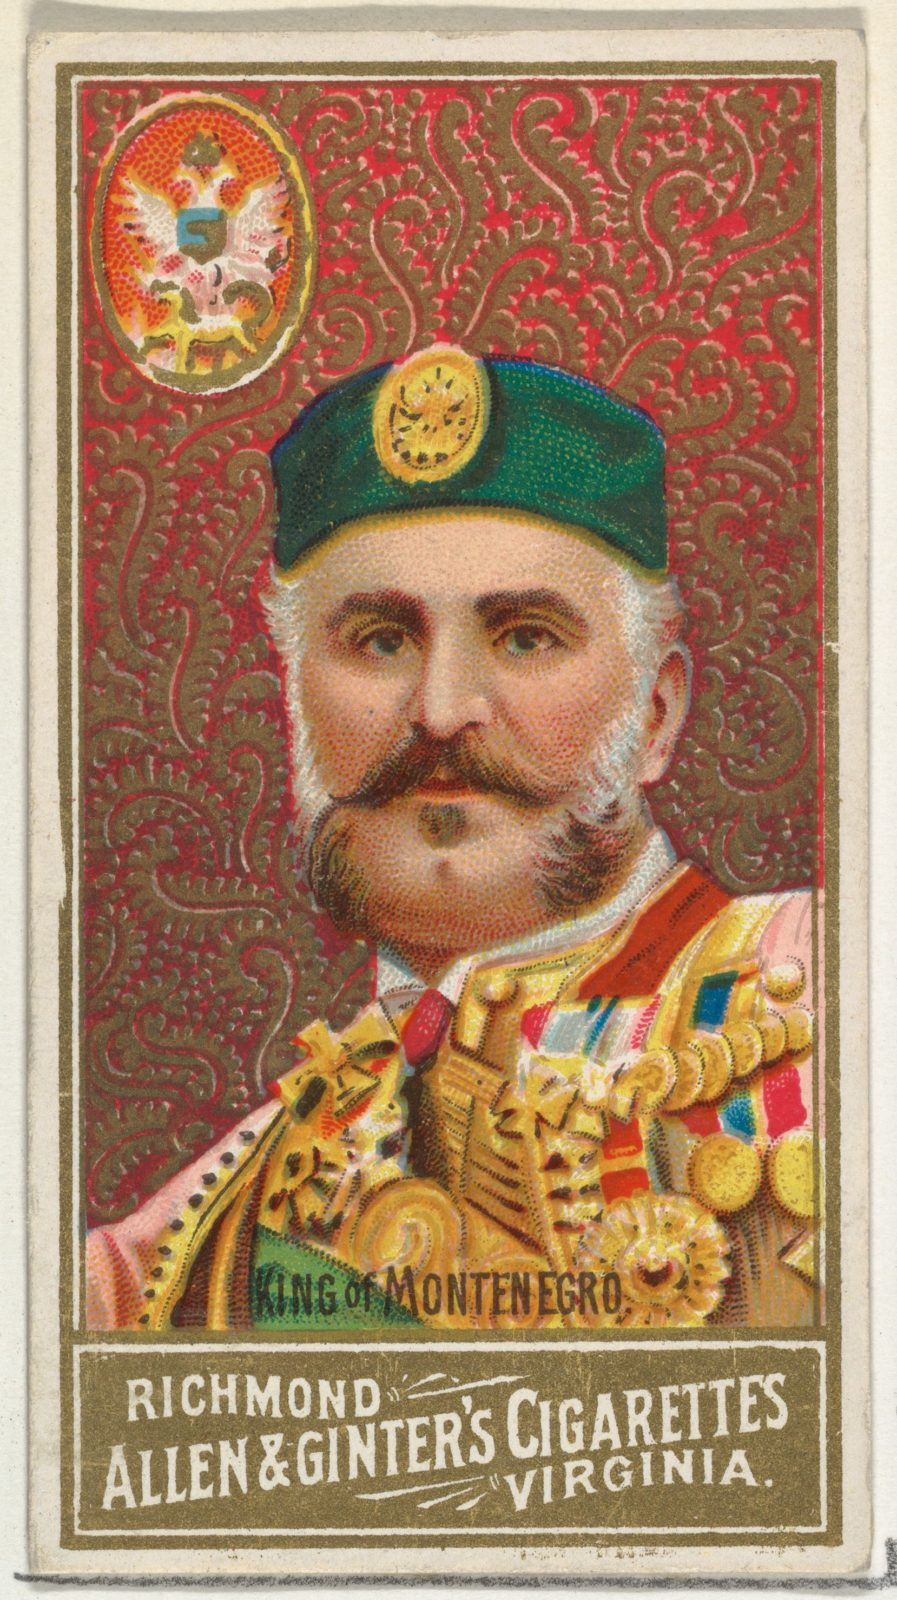 King of Montenegro, from World's Sovereigns series (N34) for Allen & Ginter Cigarettes